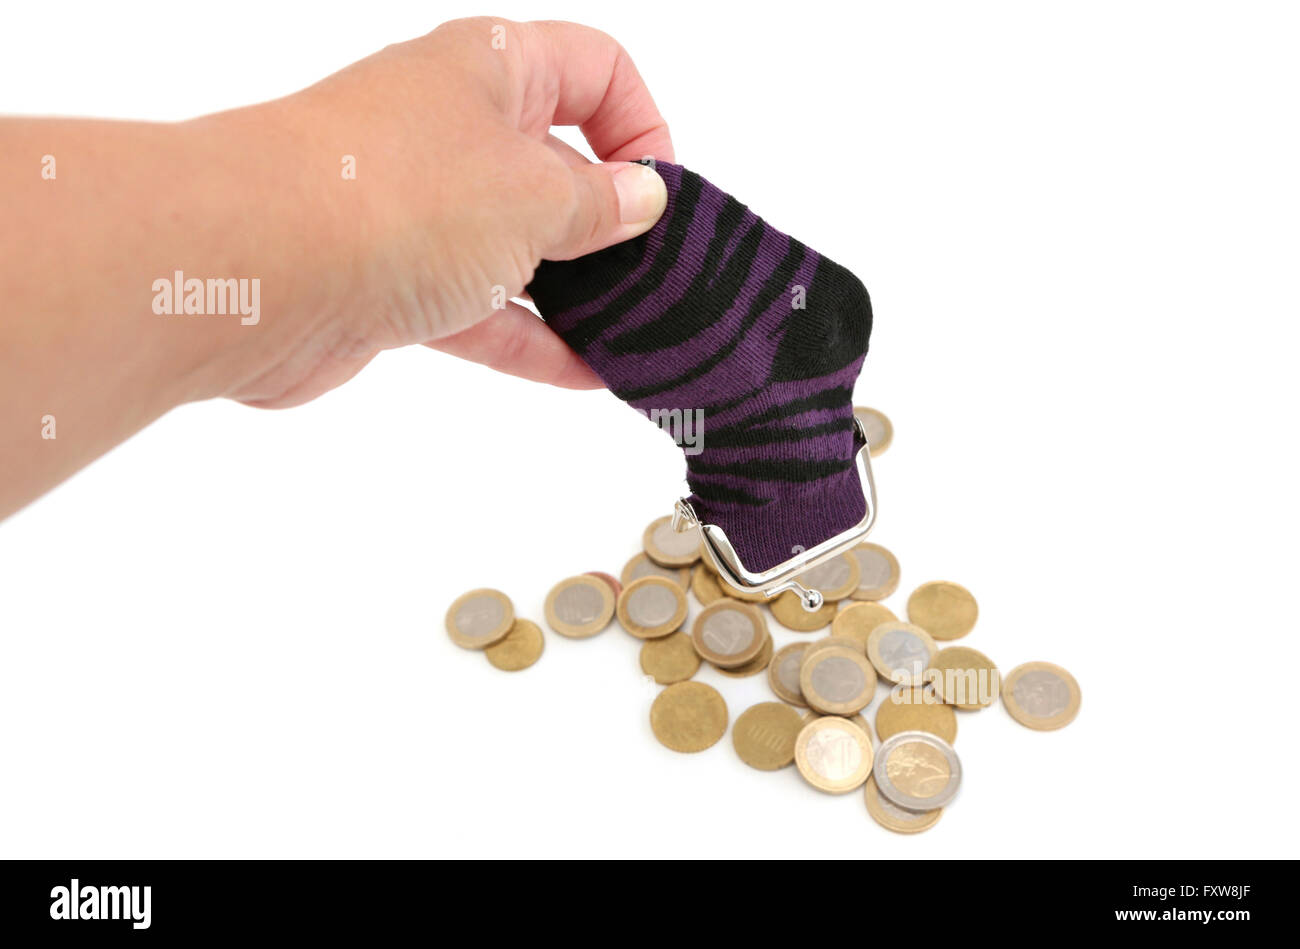 A woman empties her sock which is filled with money - Stock Image